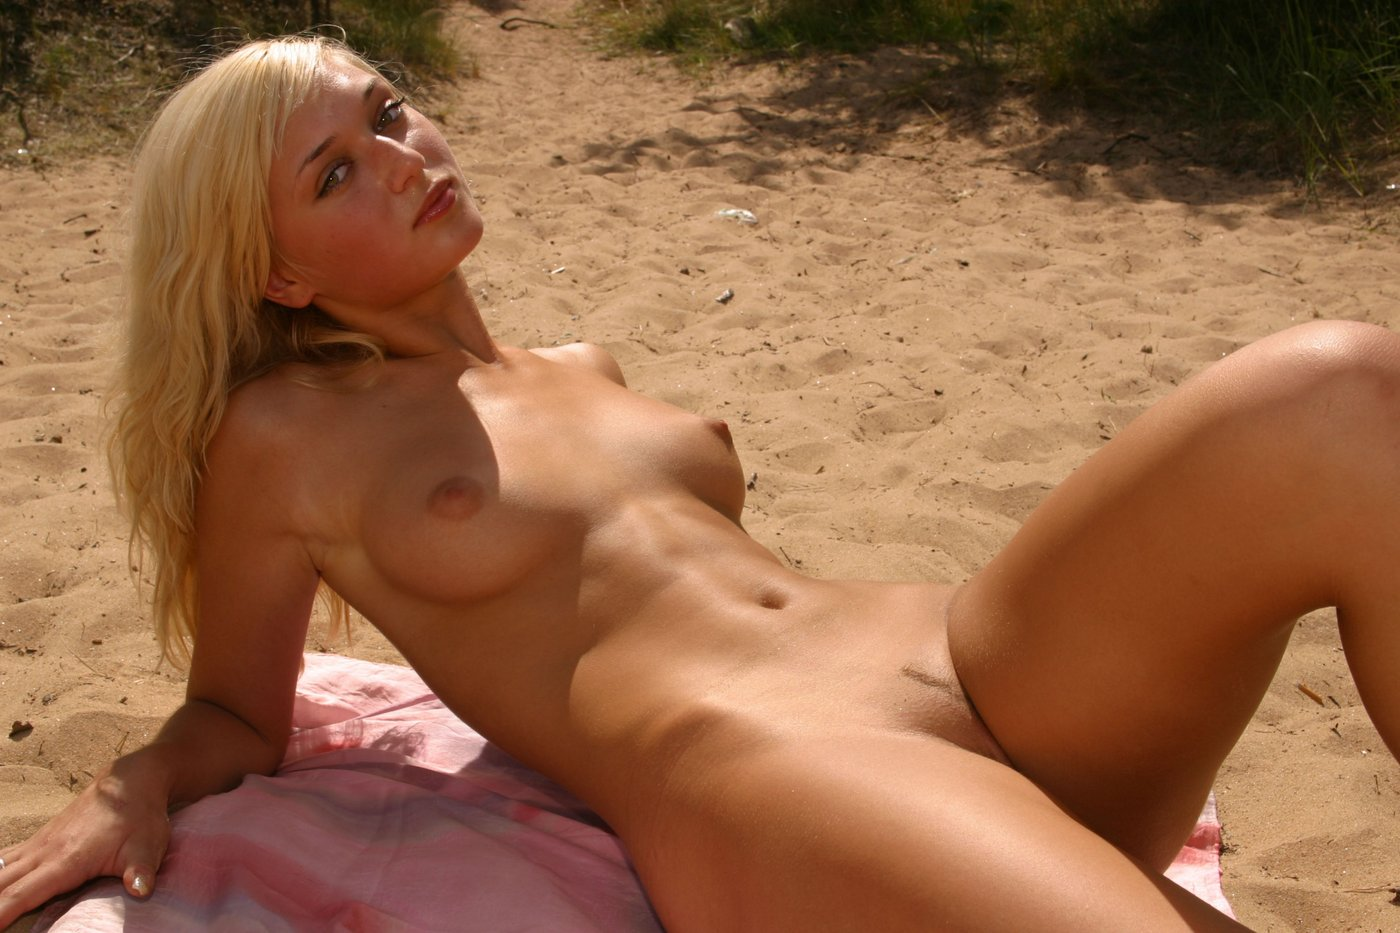 Due time French nudist beach sex for the